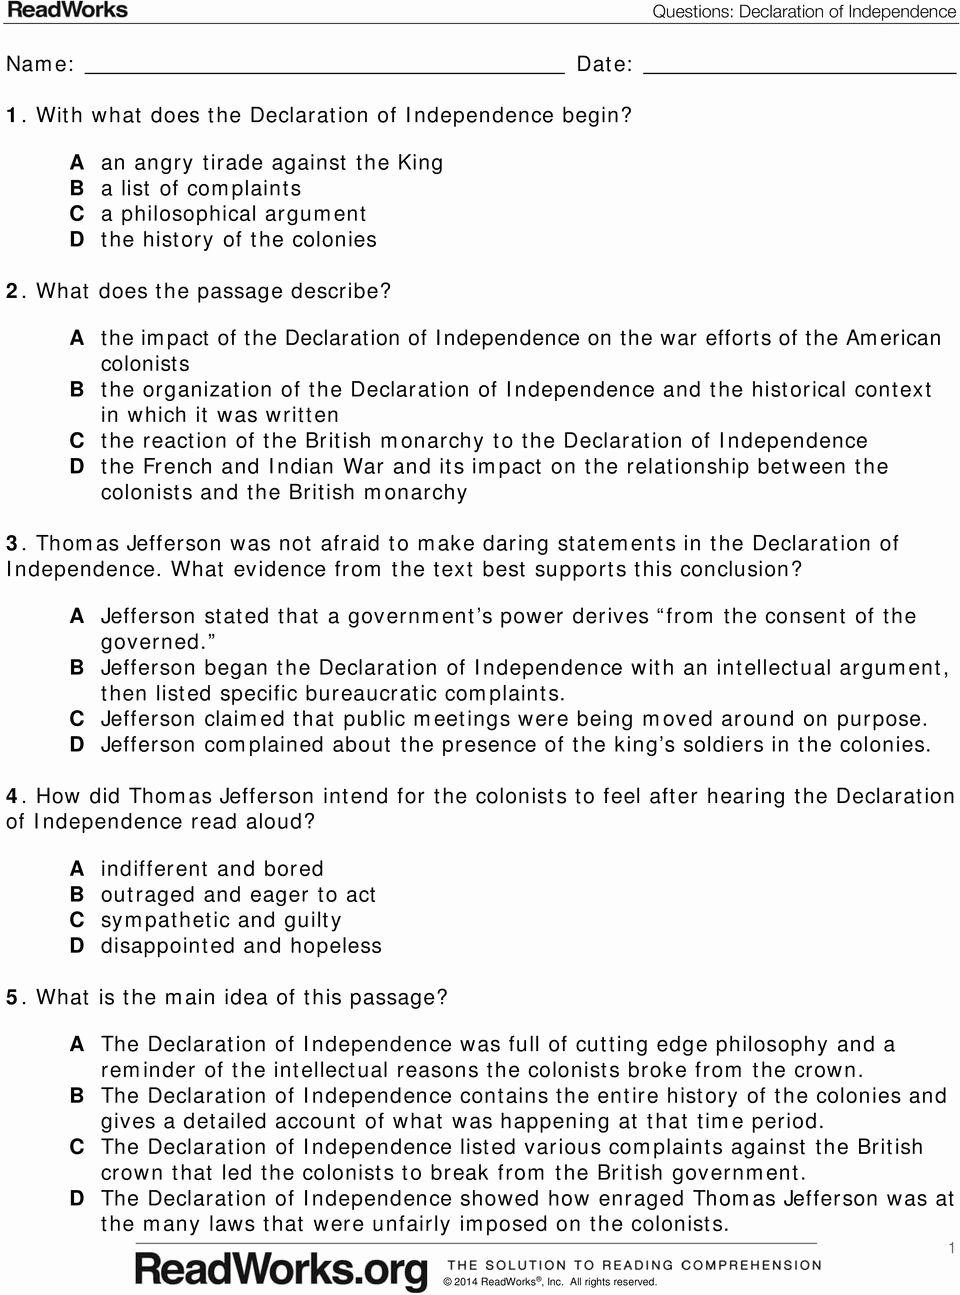 Declaration Of Independence Worksheet Answers Best Of Worksheet Declaration Independence Worksheets